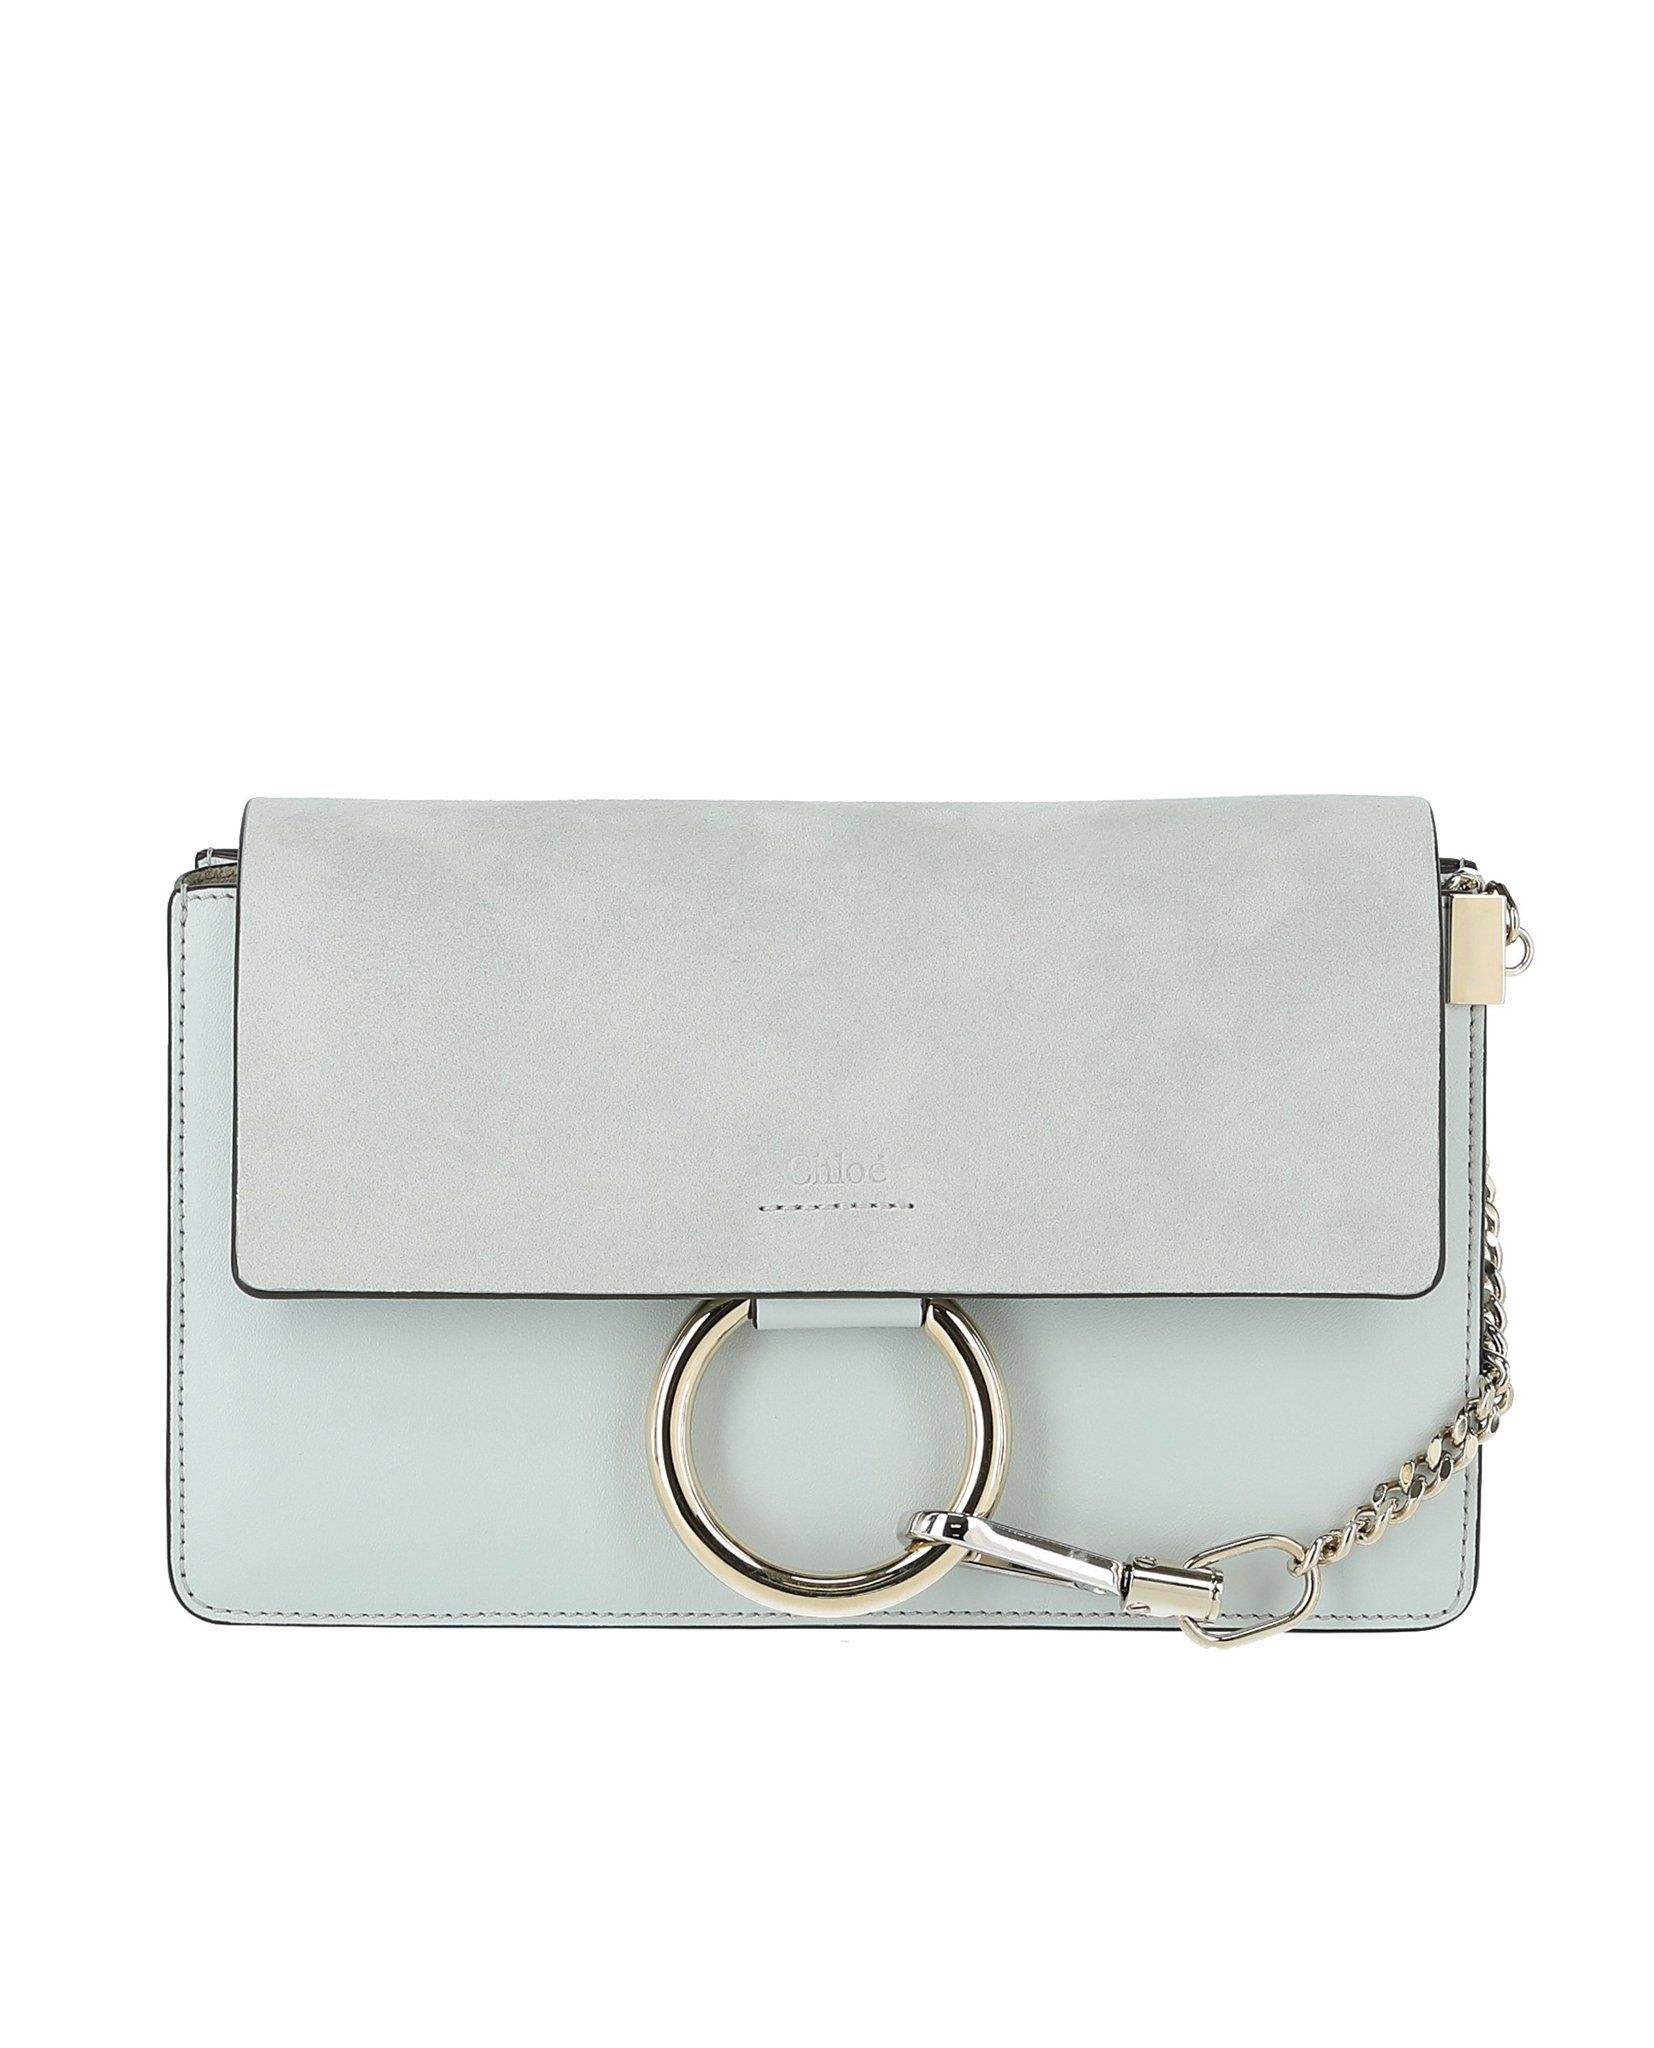 Chloé Faye Small Shoulder Bag  2bdf681ff57a6